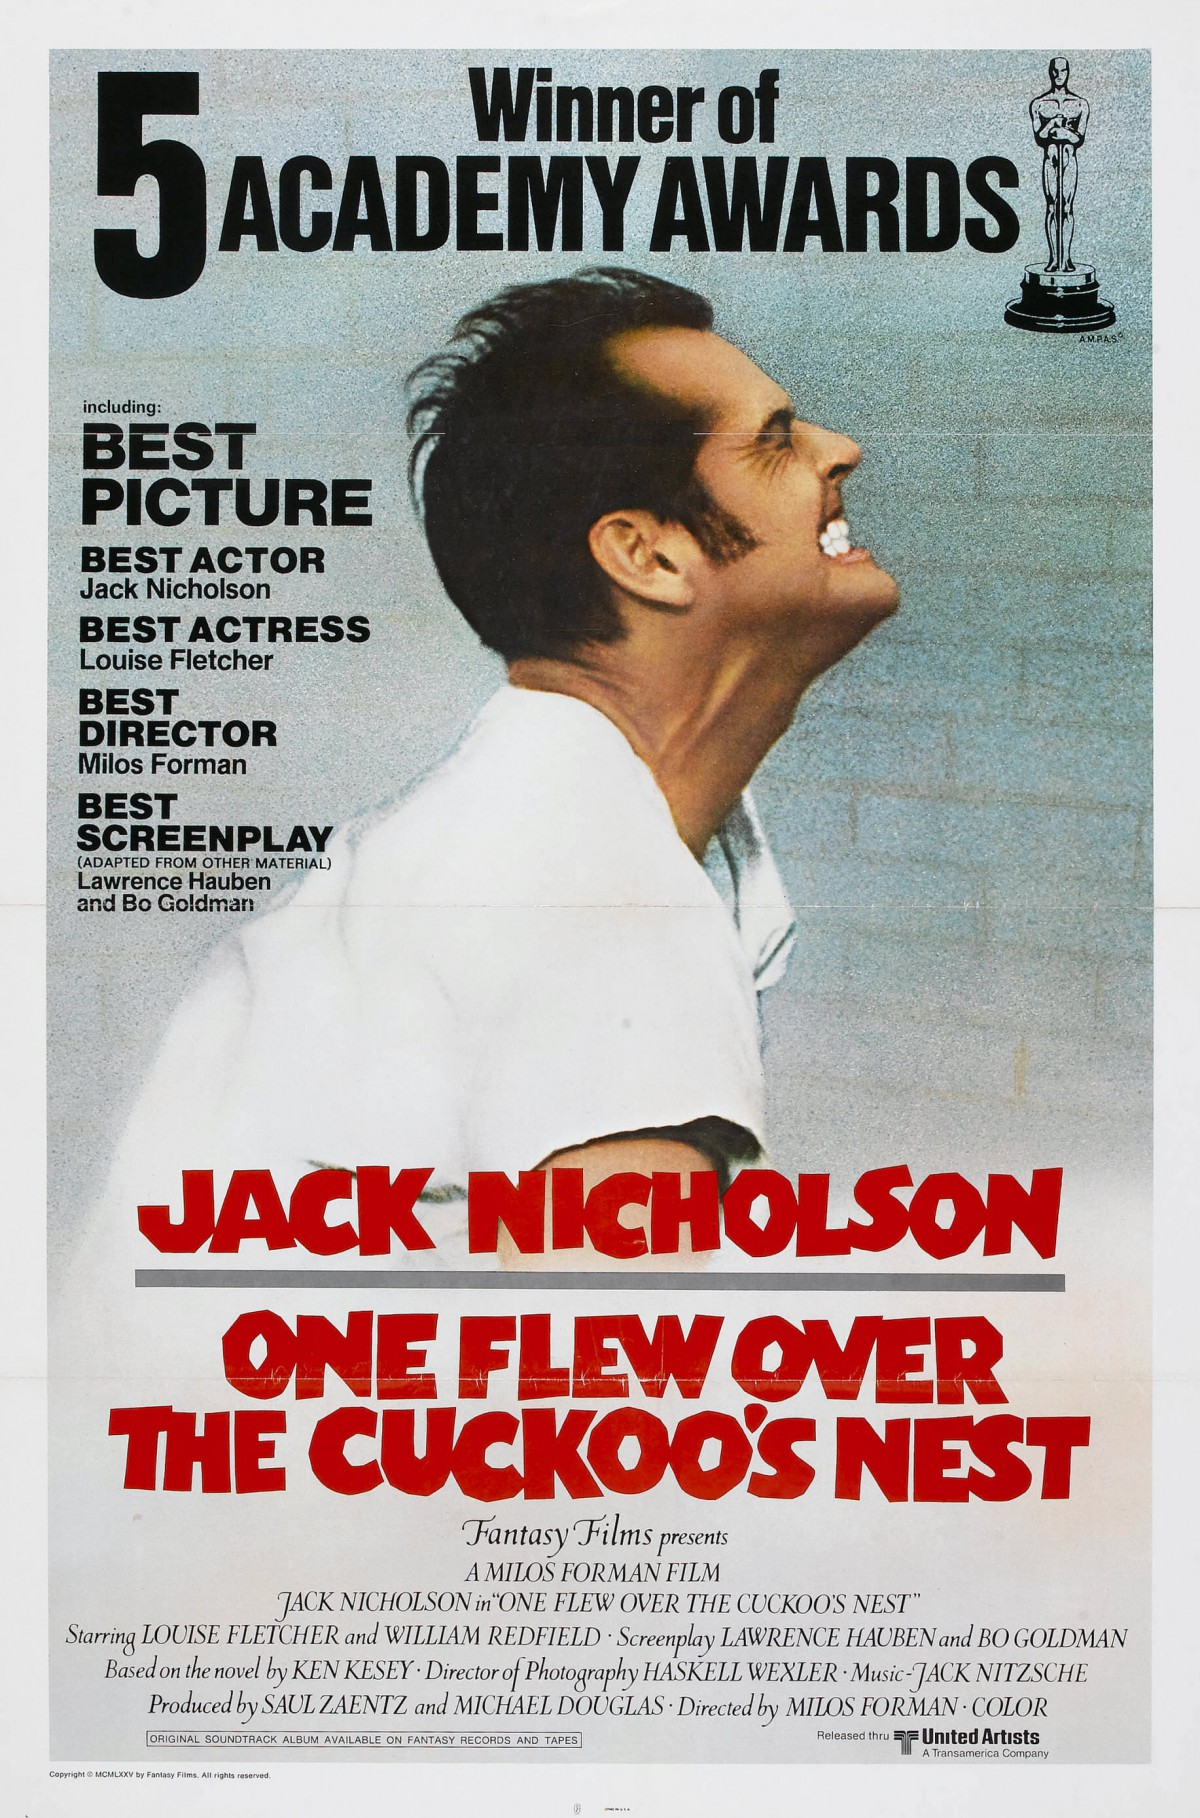 83. One Flew Over the Cuckoos Nest (1975)